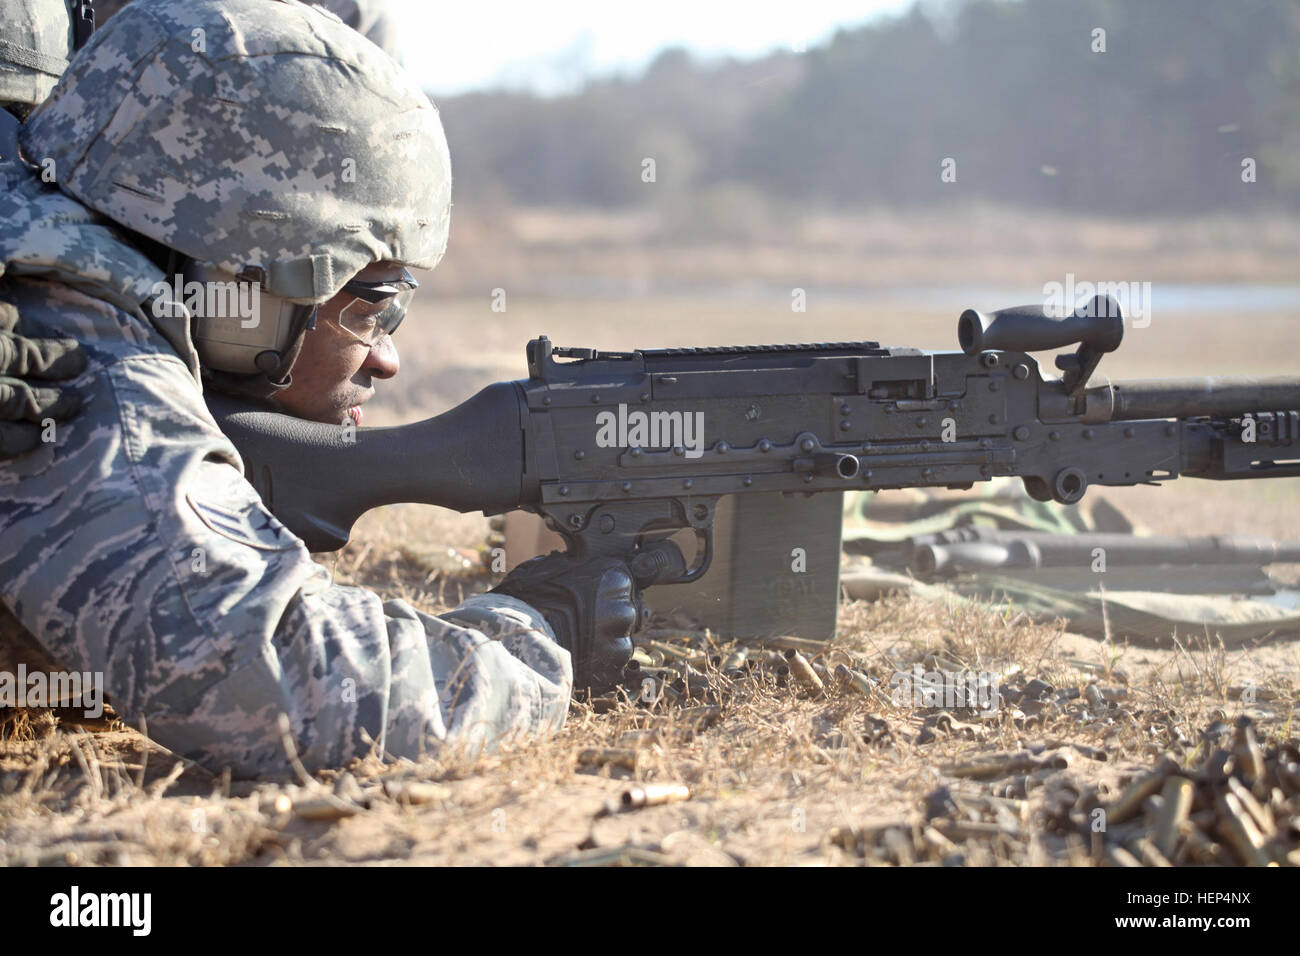 The Air National Guard's 113th Security Forces Wing, D.C. Air National Guard, Joint Base Andrews Air Force Base, Camp Springs, Md., conducted training with M-240B and M-203 weapon systems at Townsend Bombing Range, Townsend, Ga., Feb. 12, 2015. (U.S. Army photo by Spc. Tracy McKithern/Released) Sentry Savannah 2015 150212-A-LC197-0570 Stock Photo